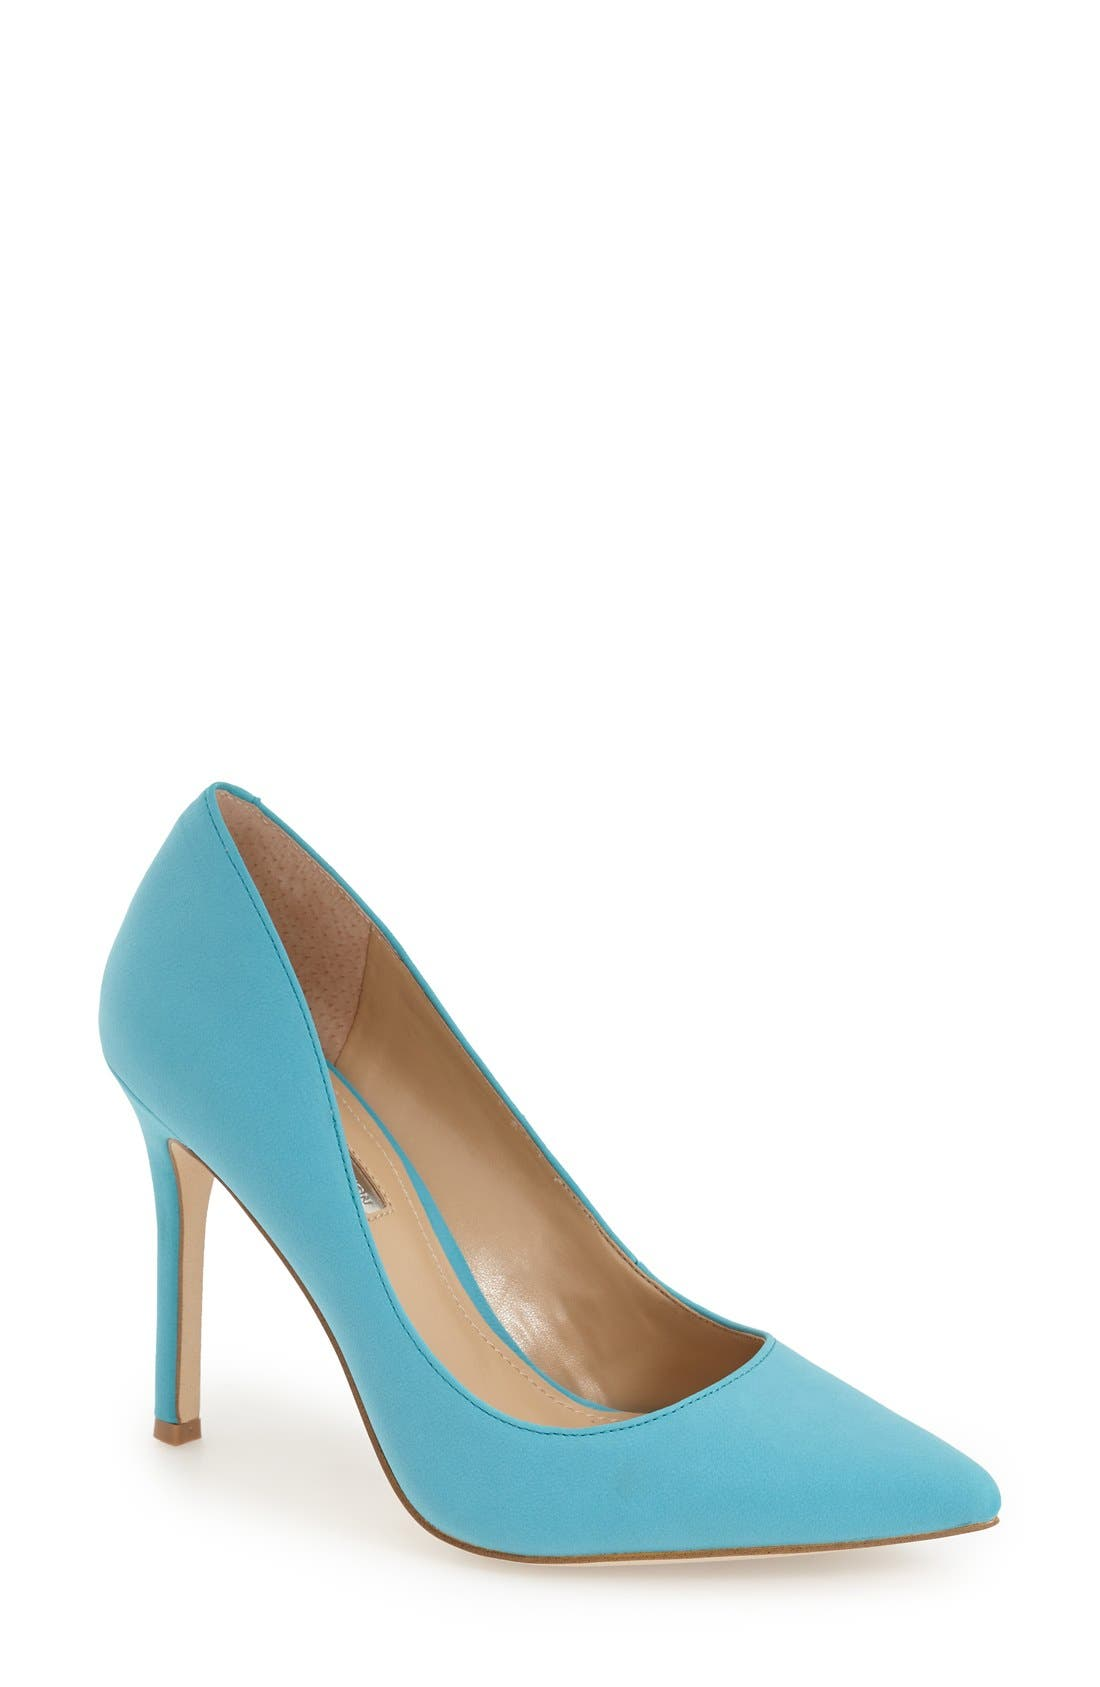 Alternate Image 1 Selected - BCBGeneration 'Treasure' Pointy Toe Pump (Women)